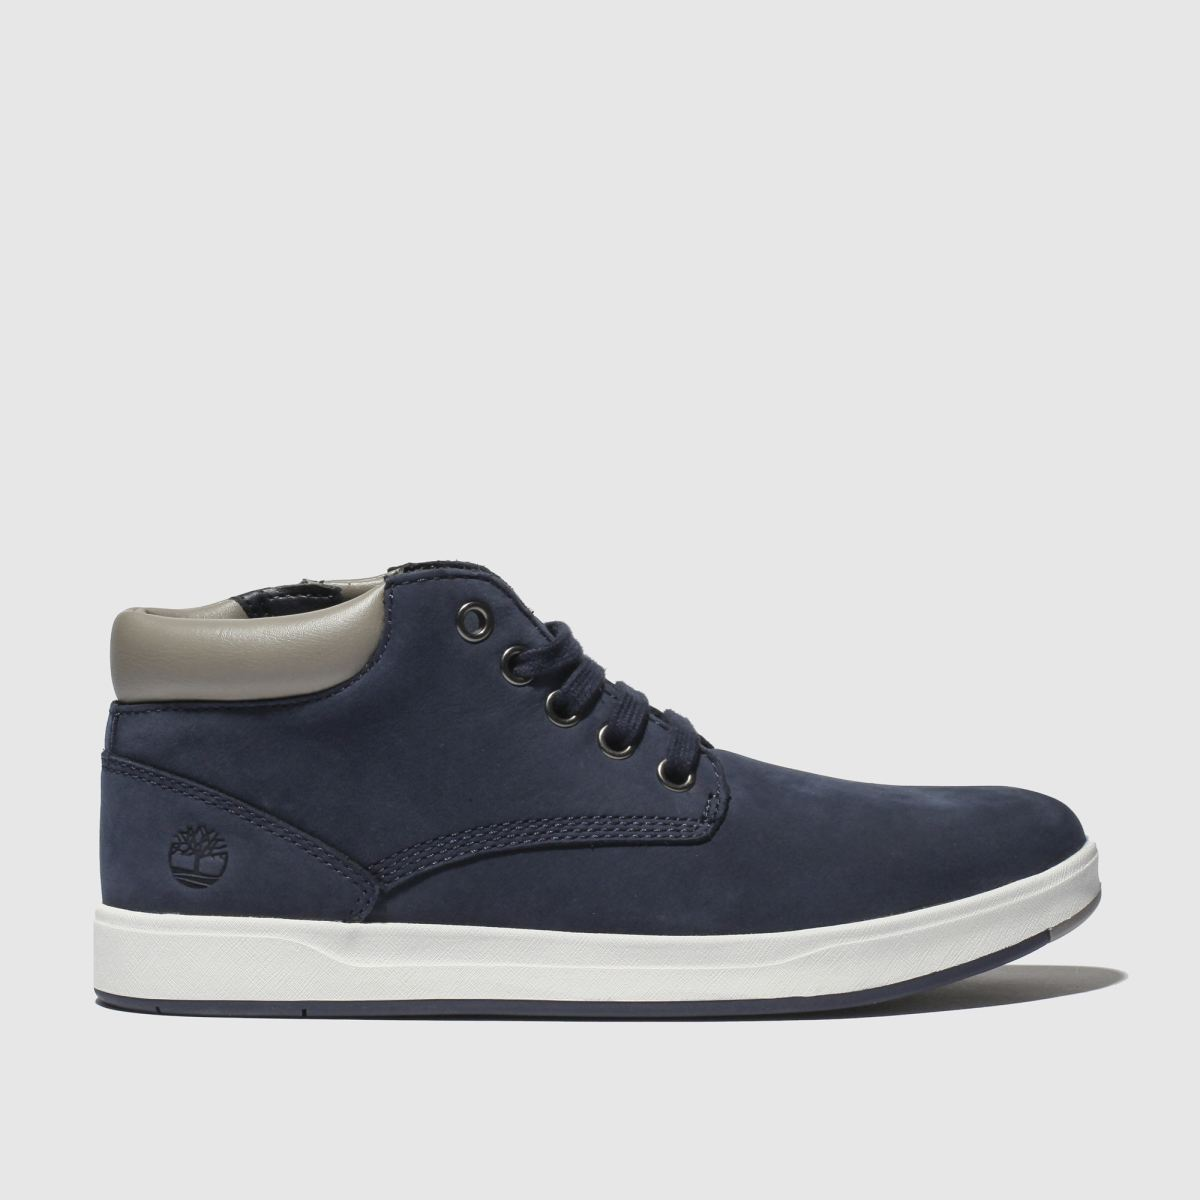 Timberland Navy Davis Square Boots Youth